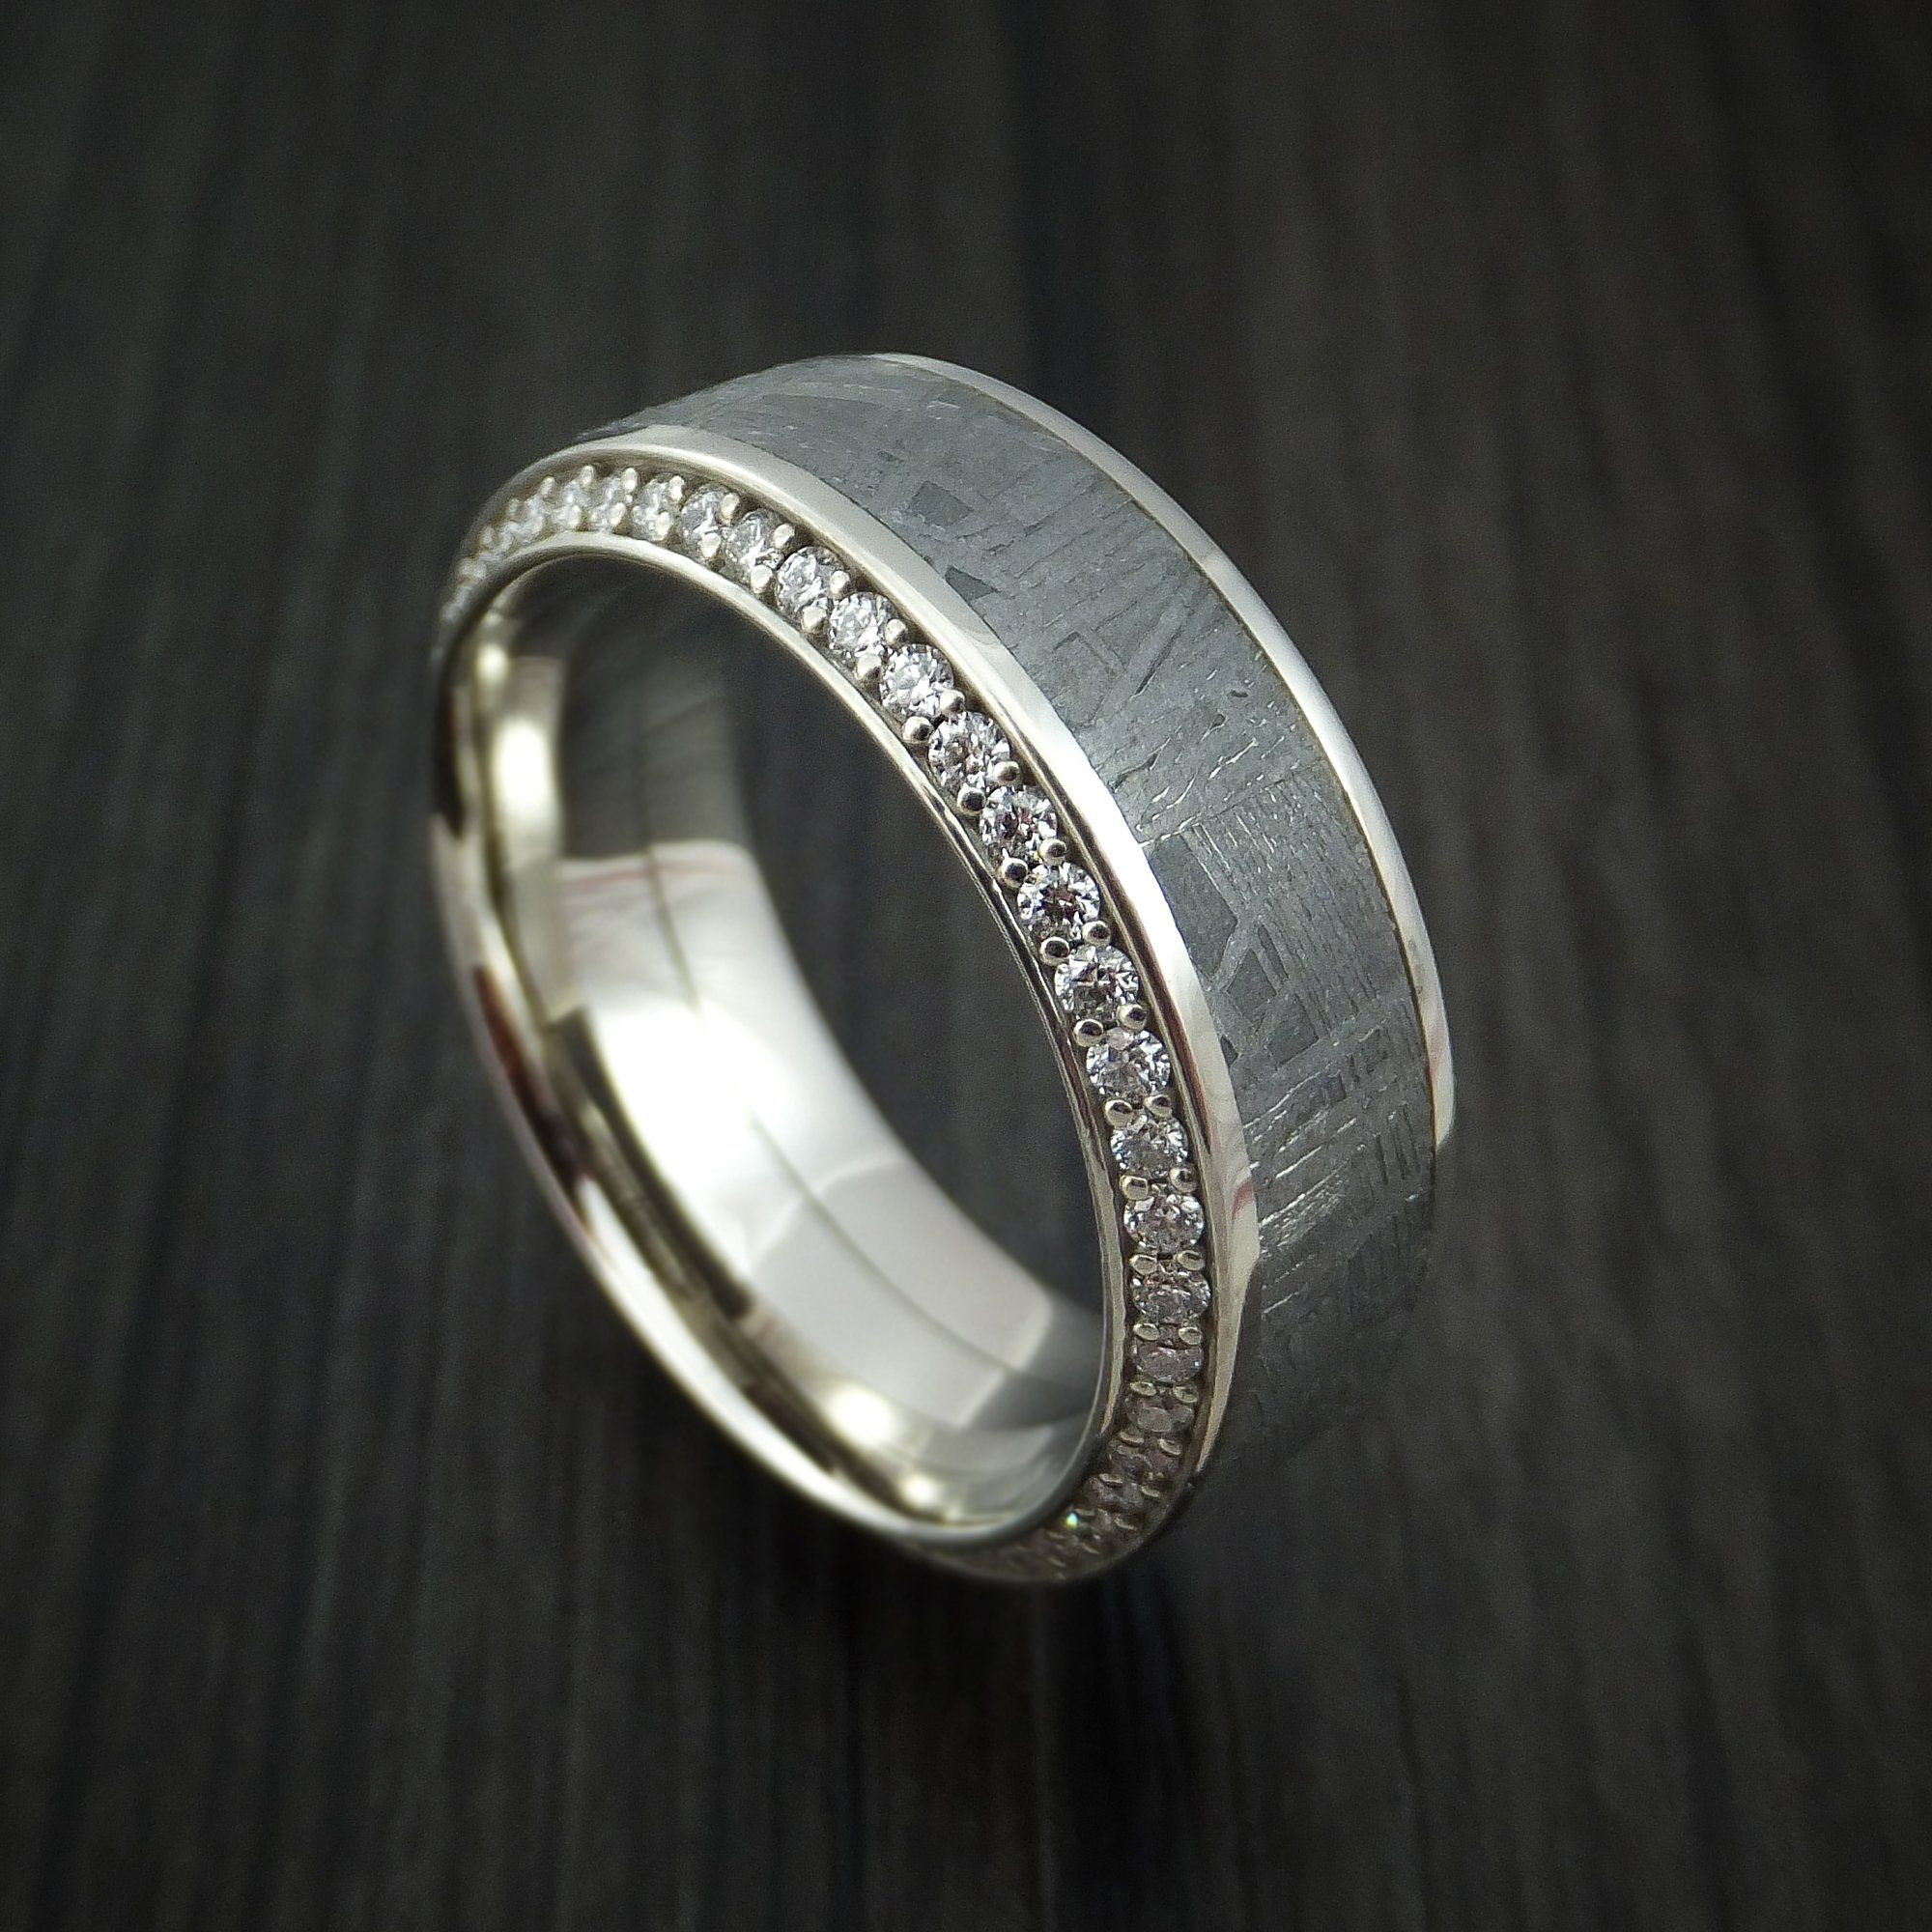 14K White Gold Ring with Meteorite Inlay and Eternity Set